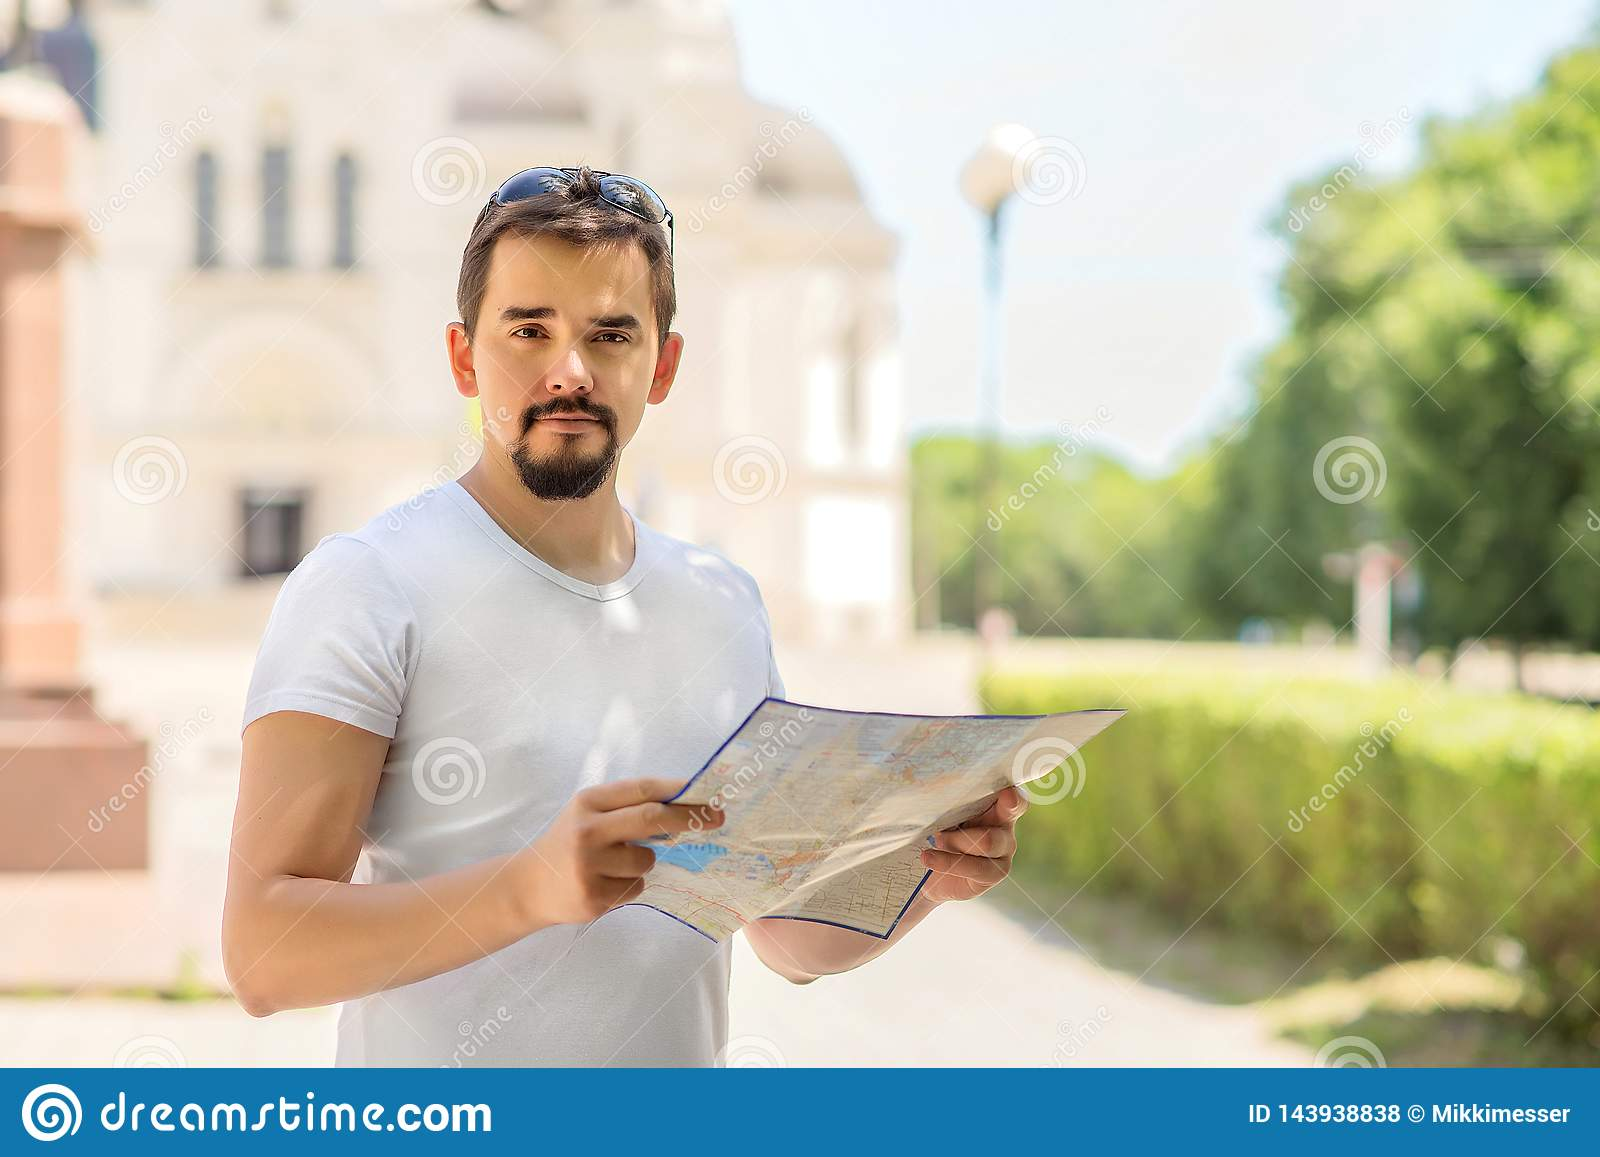 Travel and vacation concept: attractive adult male tourist with a paper map on city square or street in sunny day. Copy space